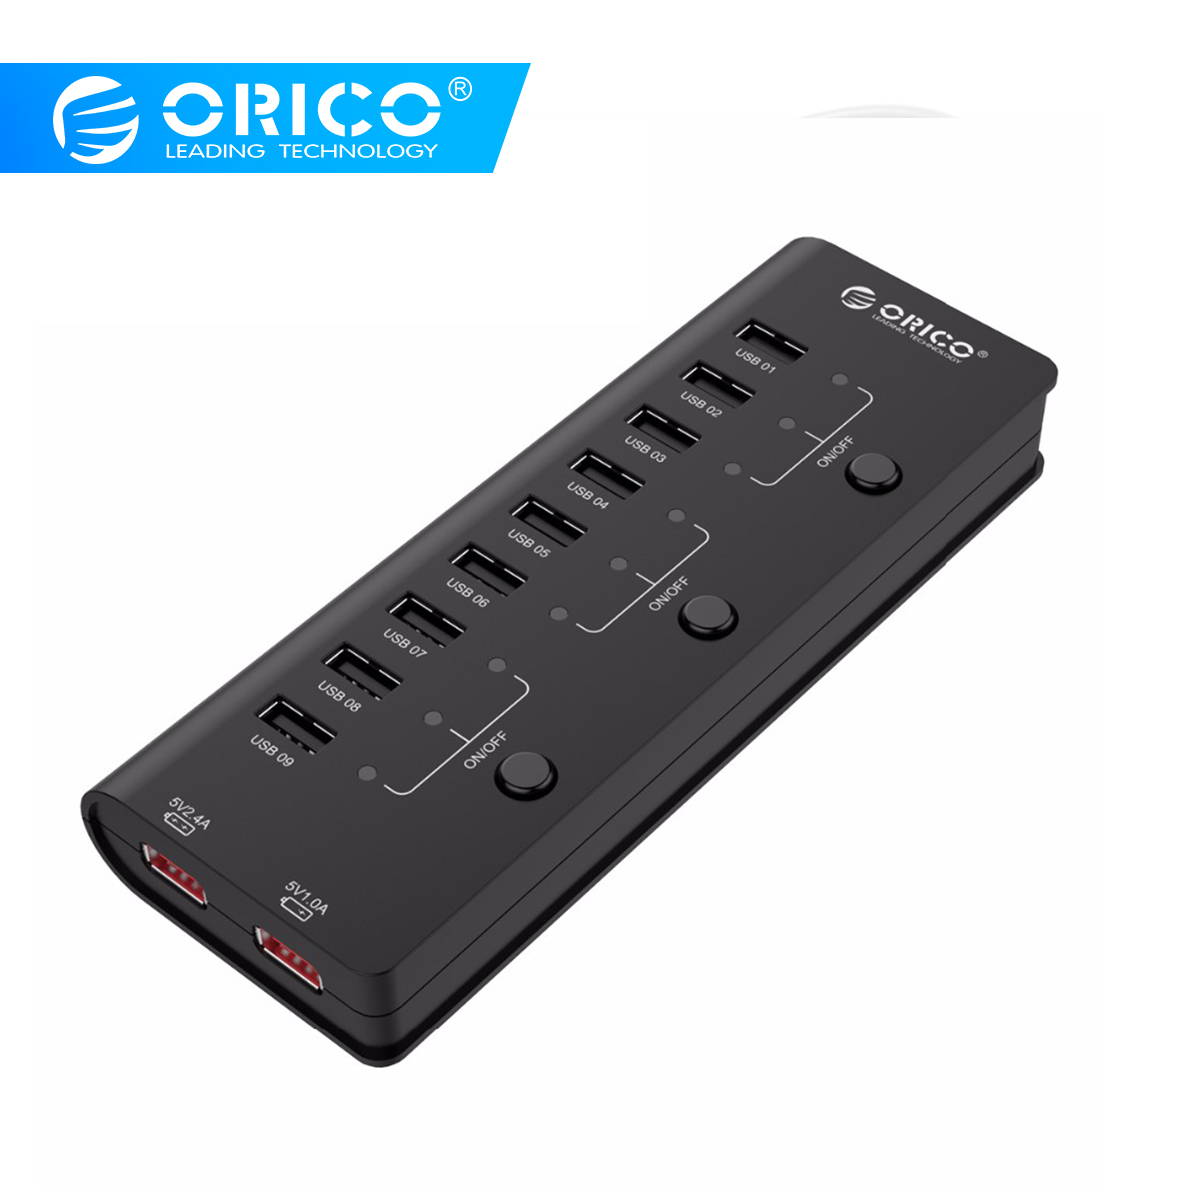 ORICO HF9US-2P-BK  9 Ports USB2.0 HUB With 2 Ports Charging 3 Power Switch For Tablet Cellphone With CE/FCC/3C/ROHS